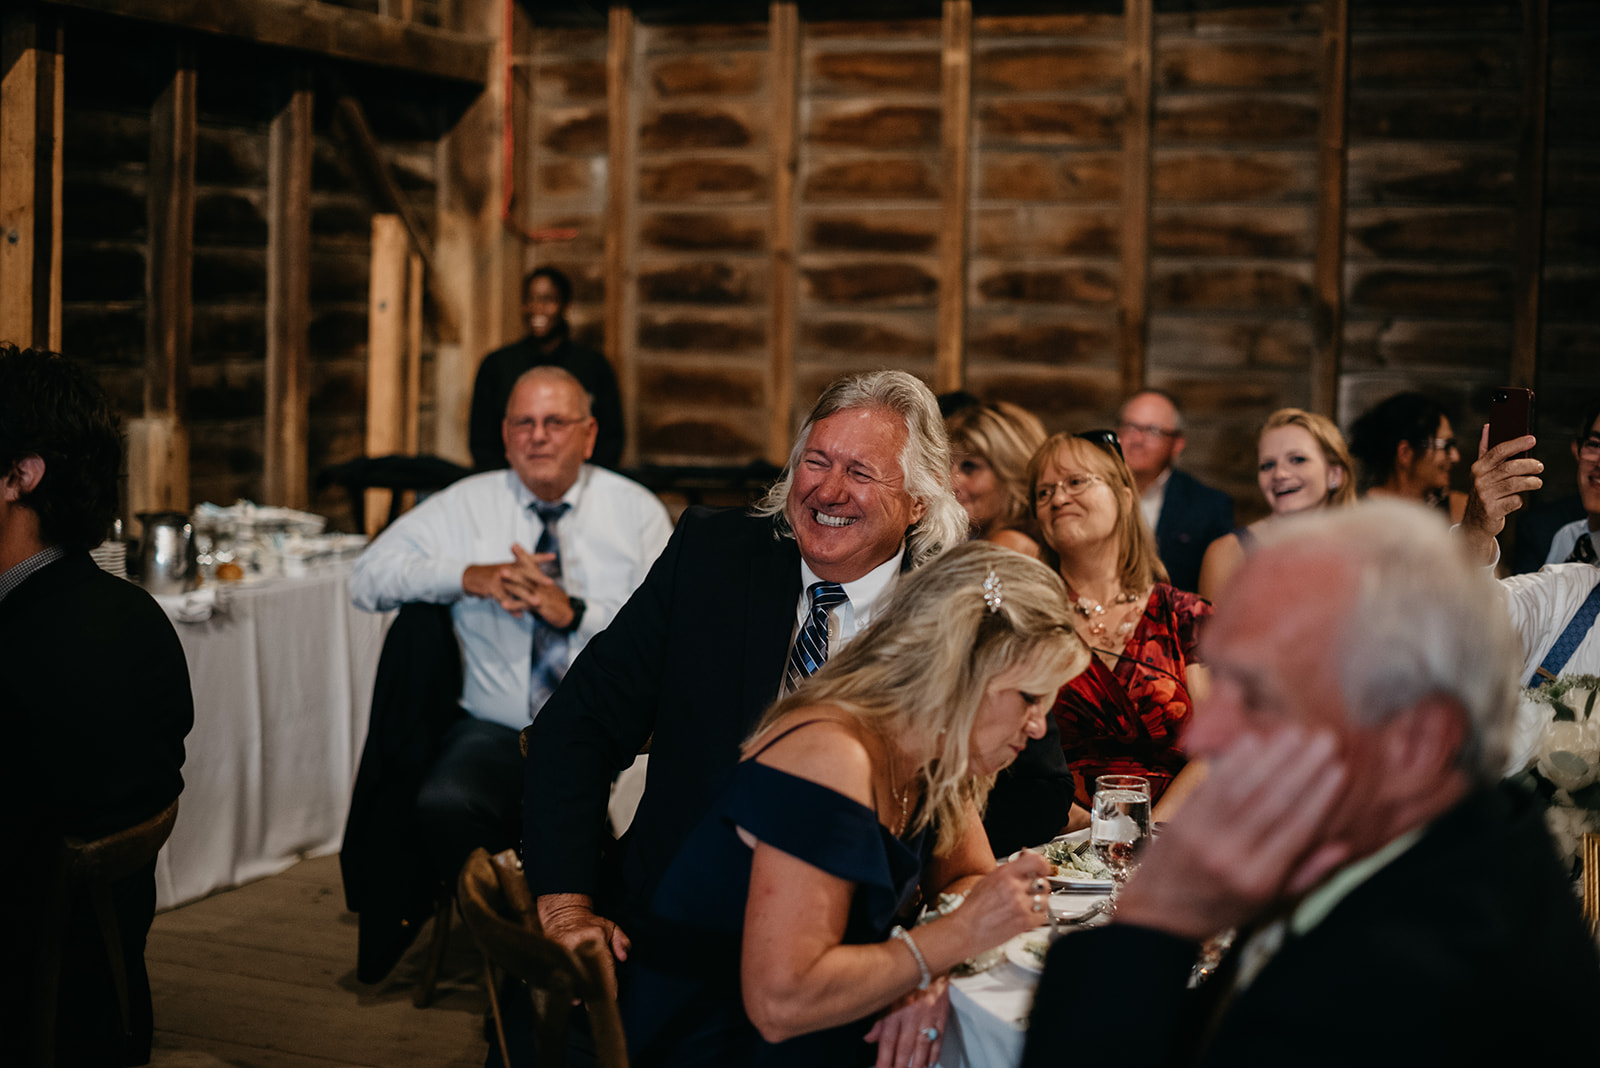 shaker_heritage_barn_wedding_054.jpg